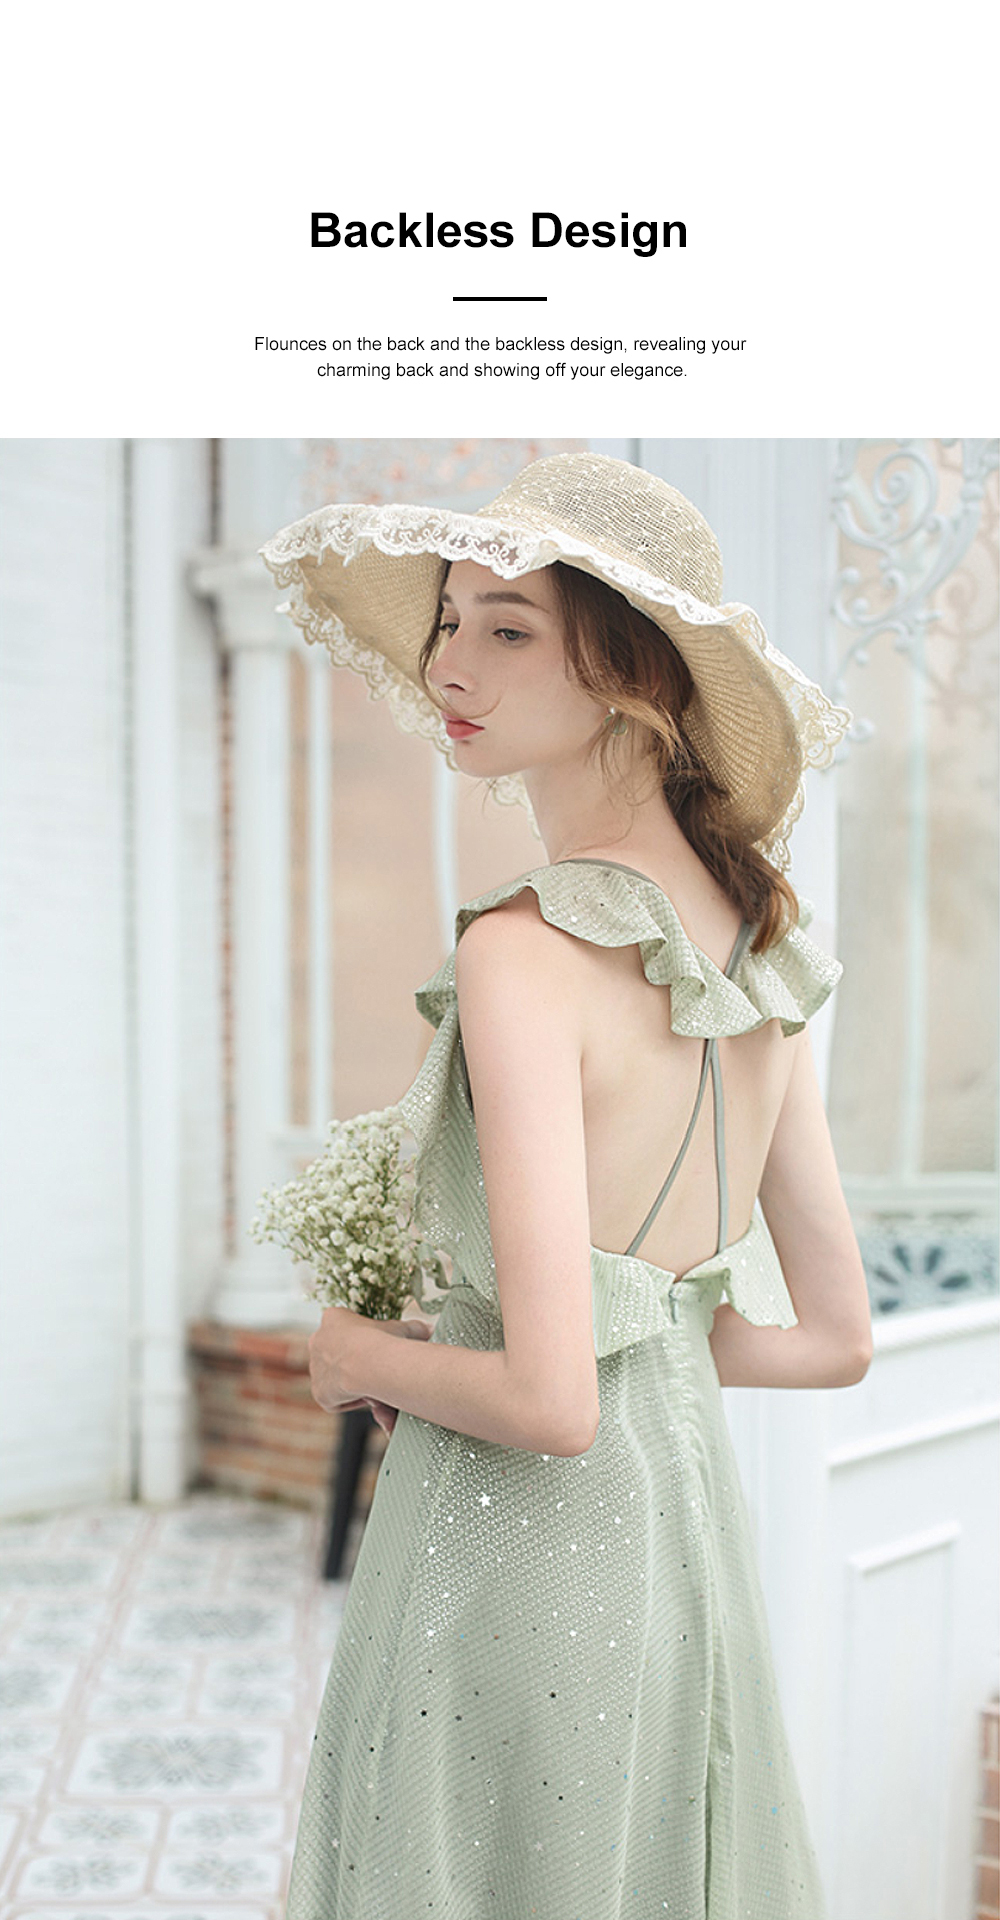 Long Chiffon Dress for 18-24 Years Girls Olive Green Backless Sequined Dress for Women Casual in Summer 3